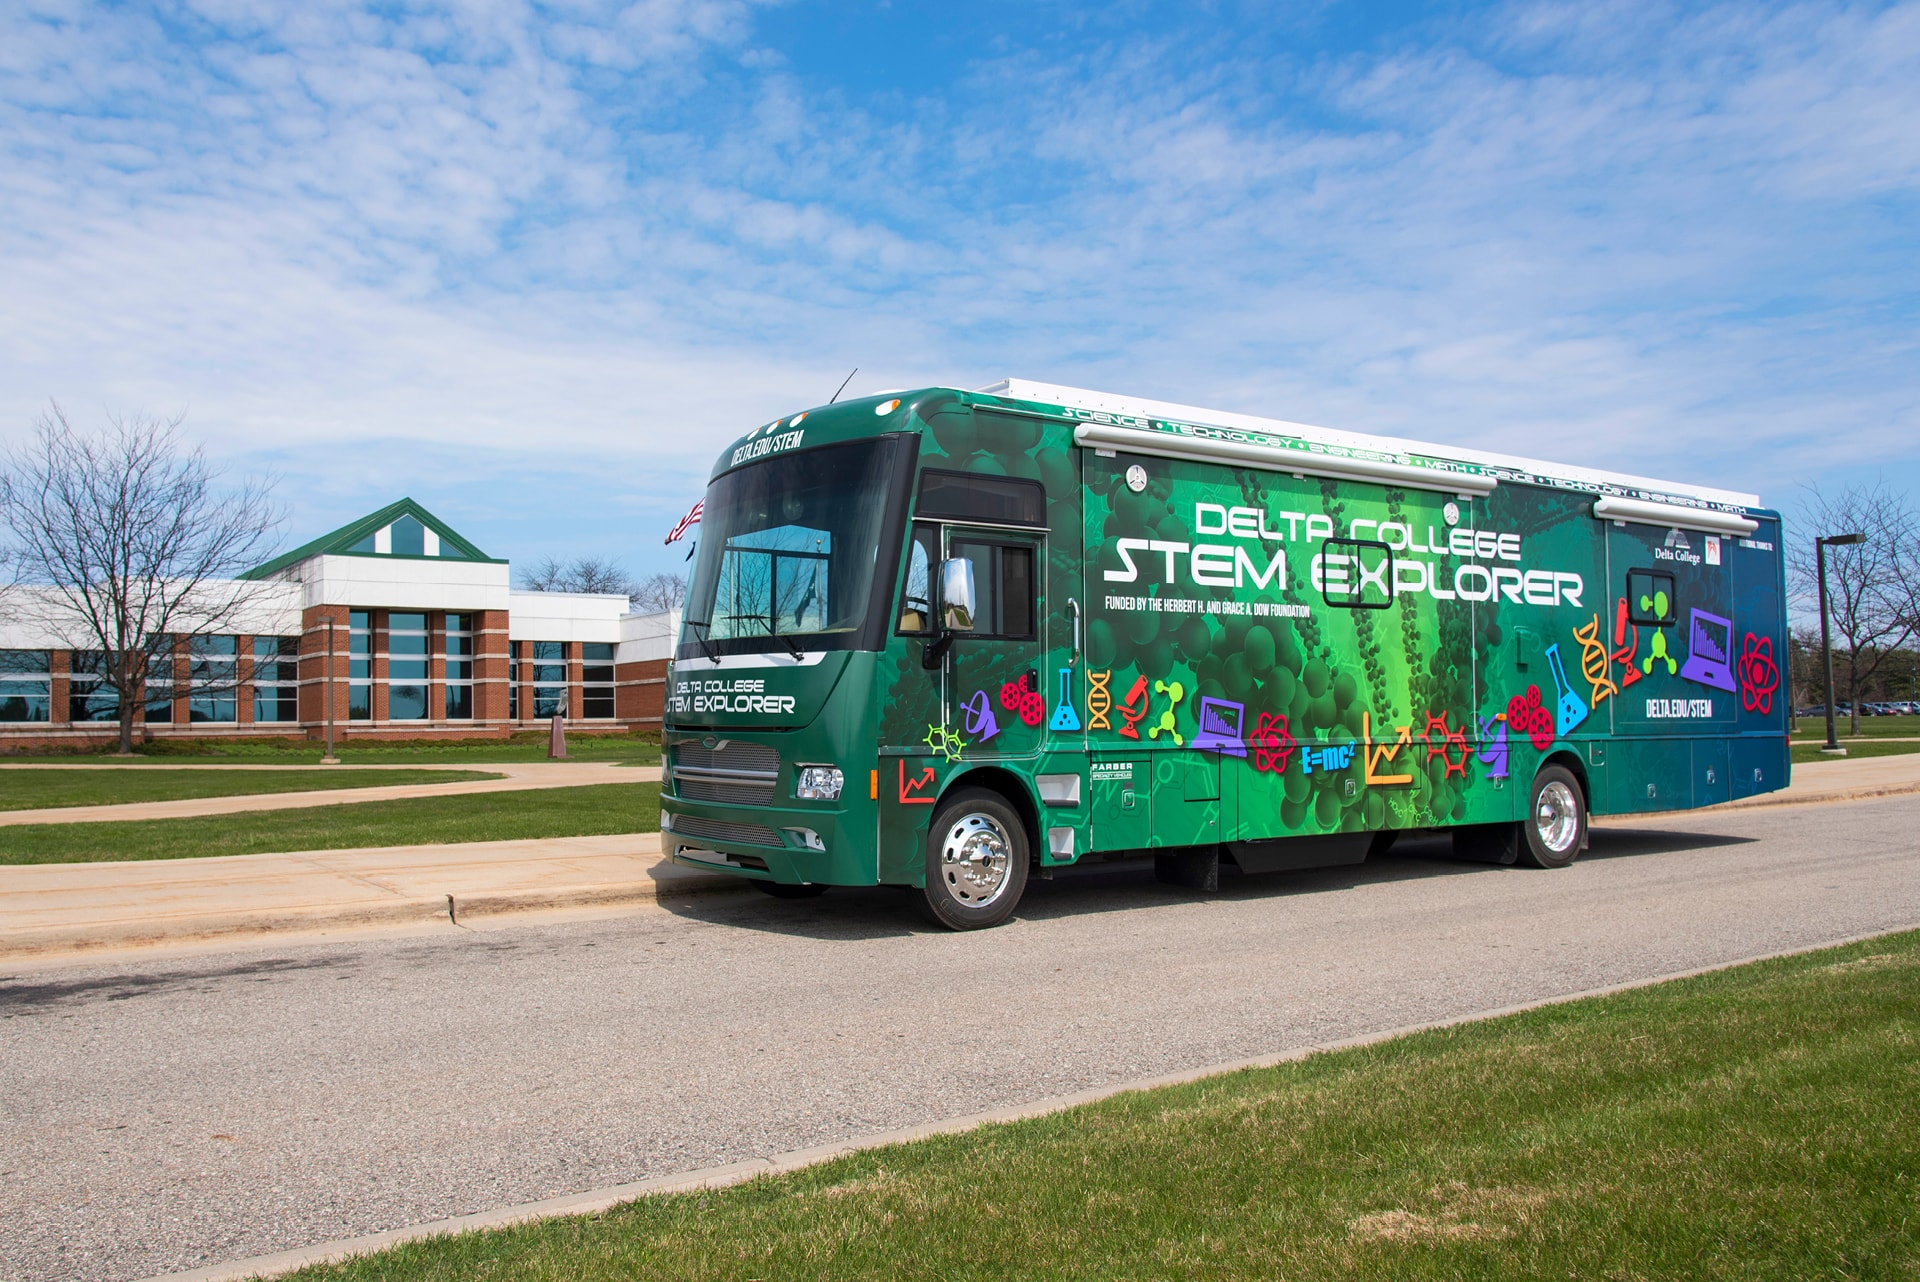 STEM Explorer parked in front of Delta Main Campus